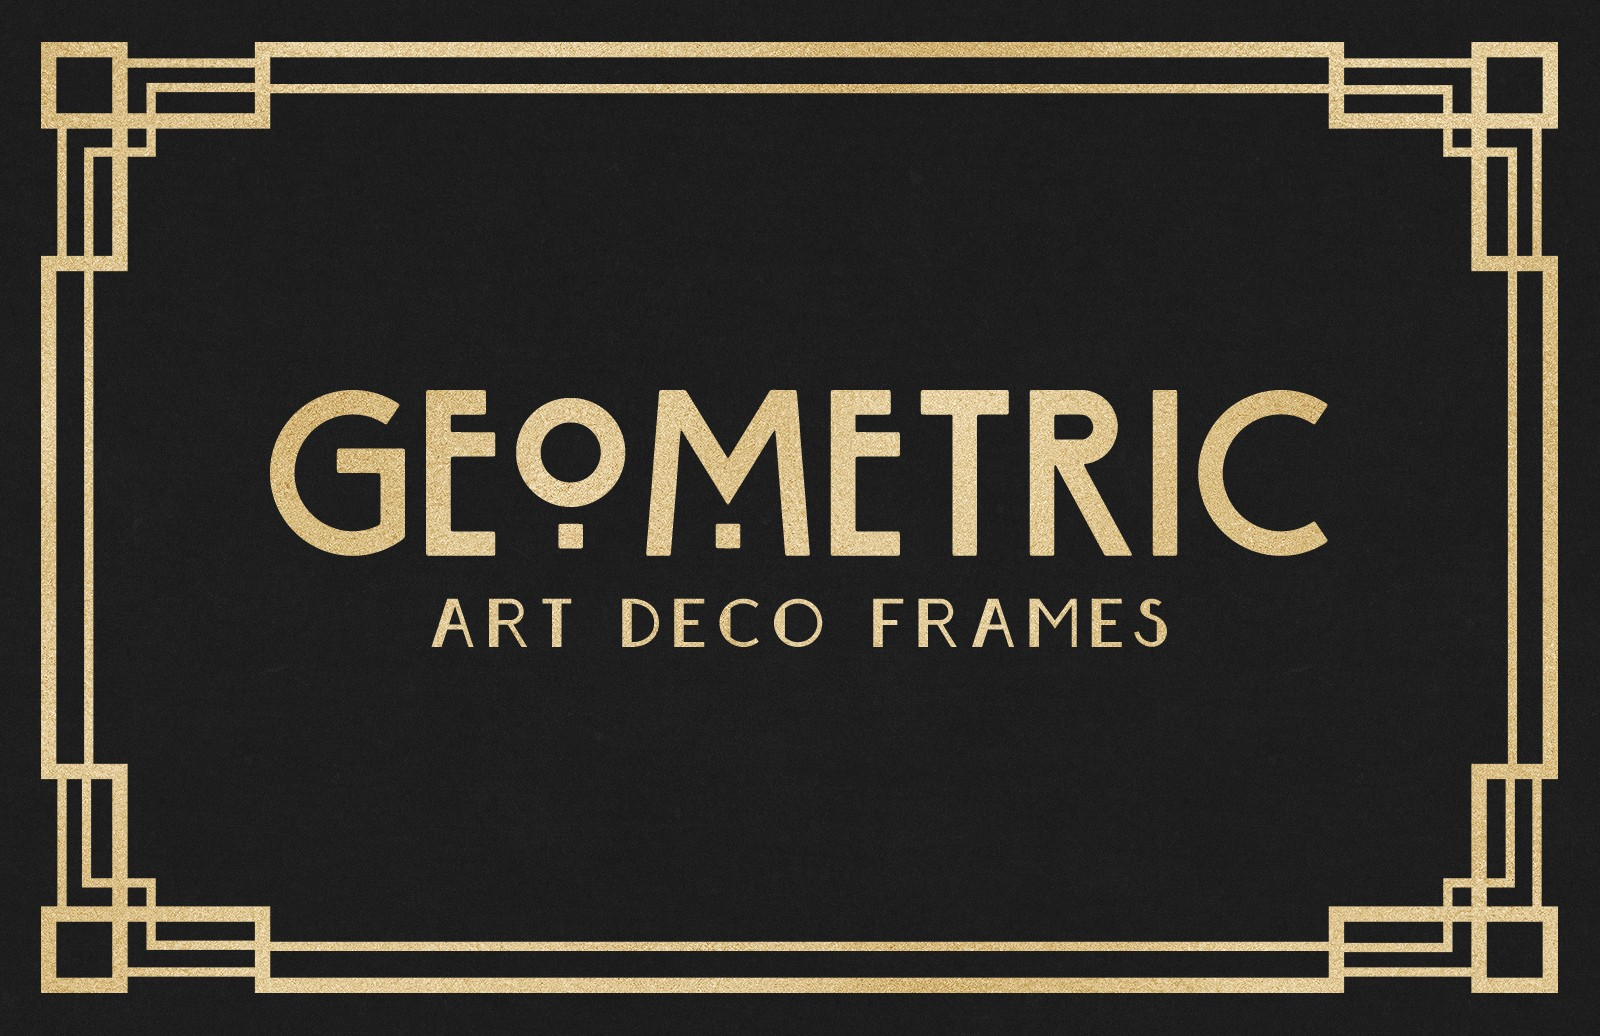 Geometric Art Deco Frames 2 Preview 1